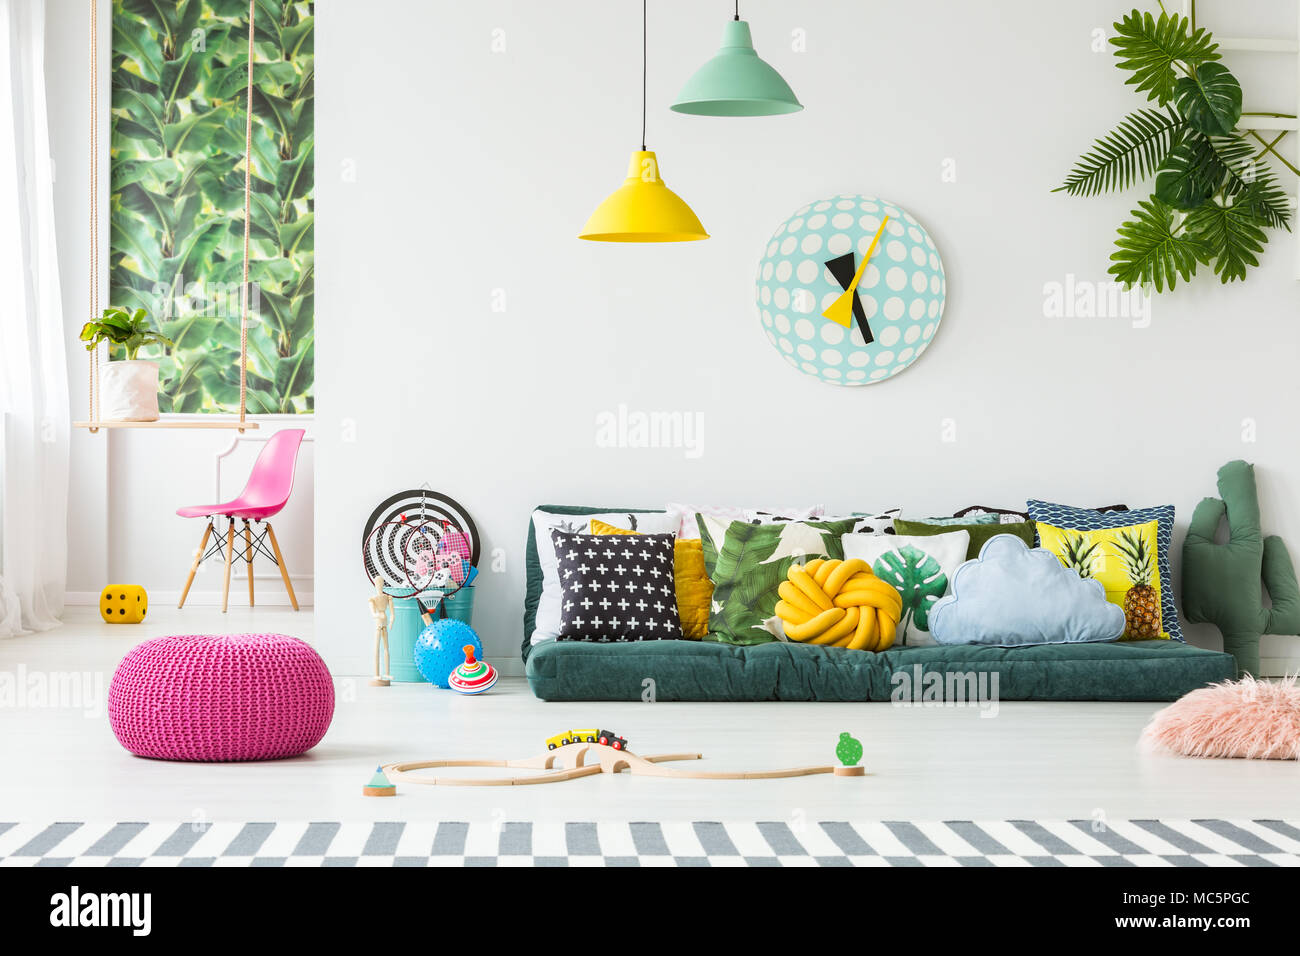 https www alamy com pink pouf and kids toys on the floor in bright playroom interior with many pillows on the couch image179607020 html